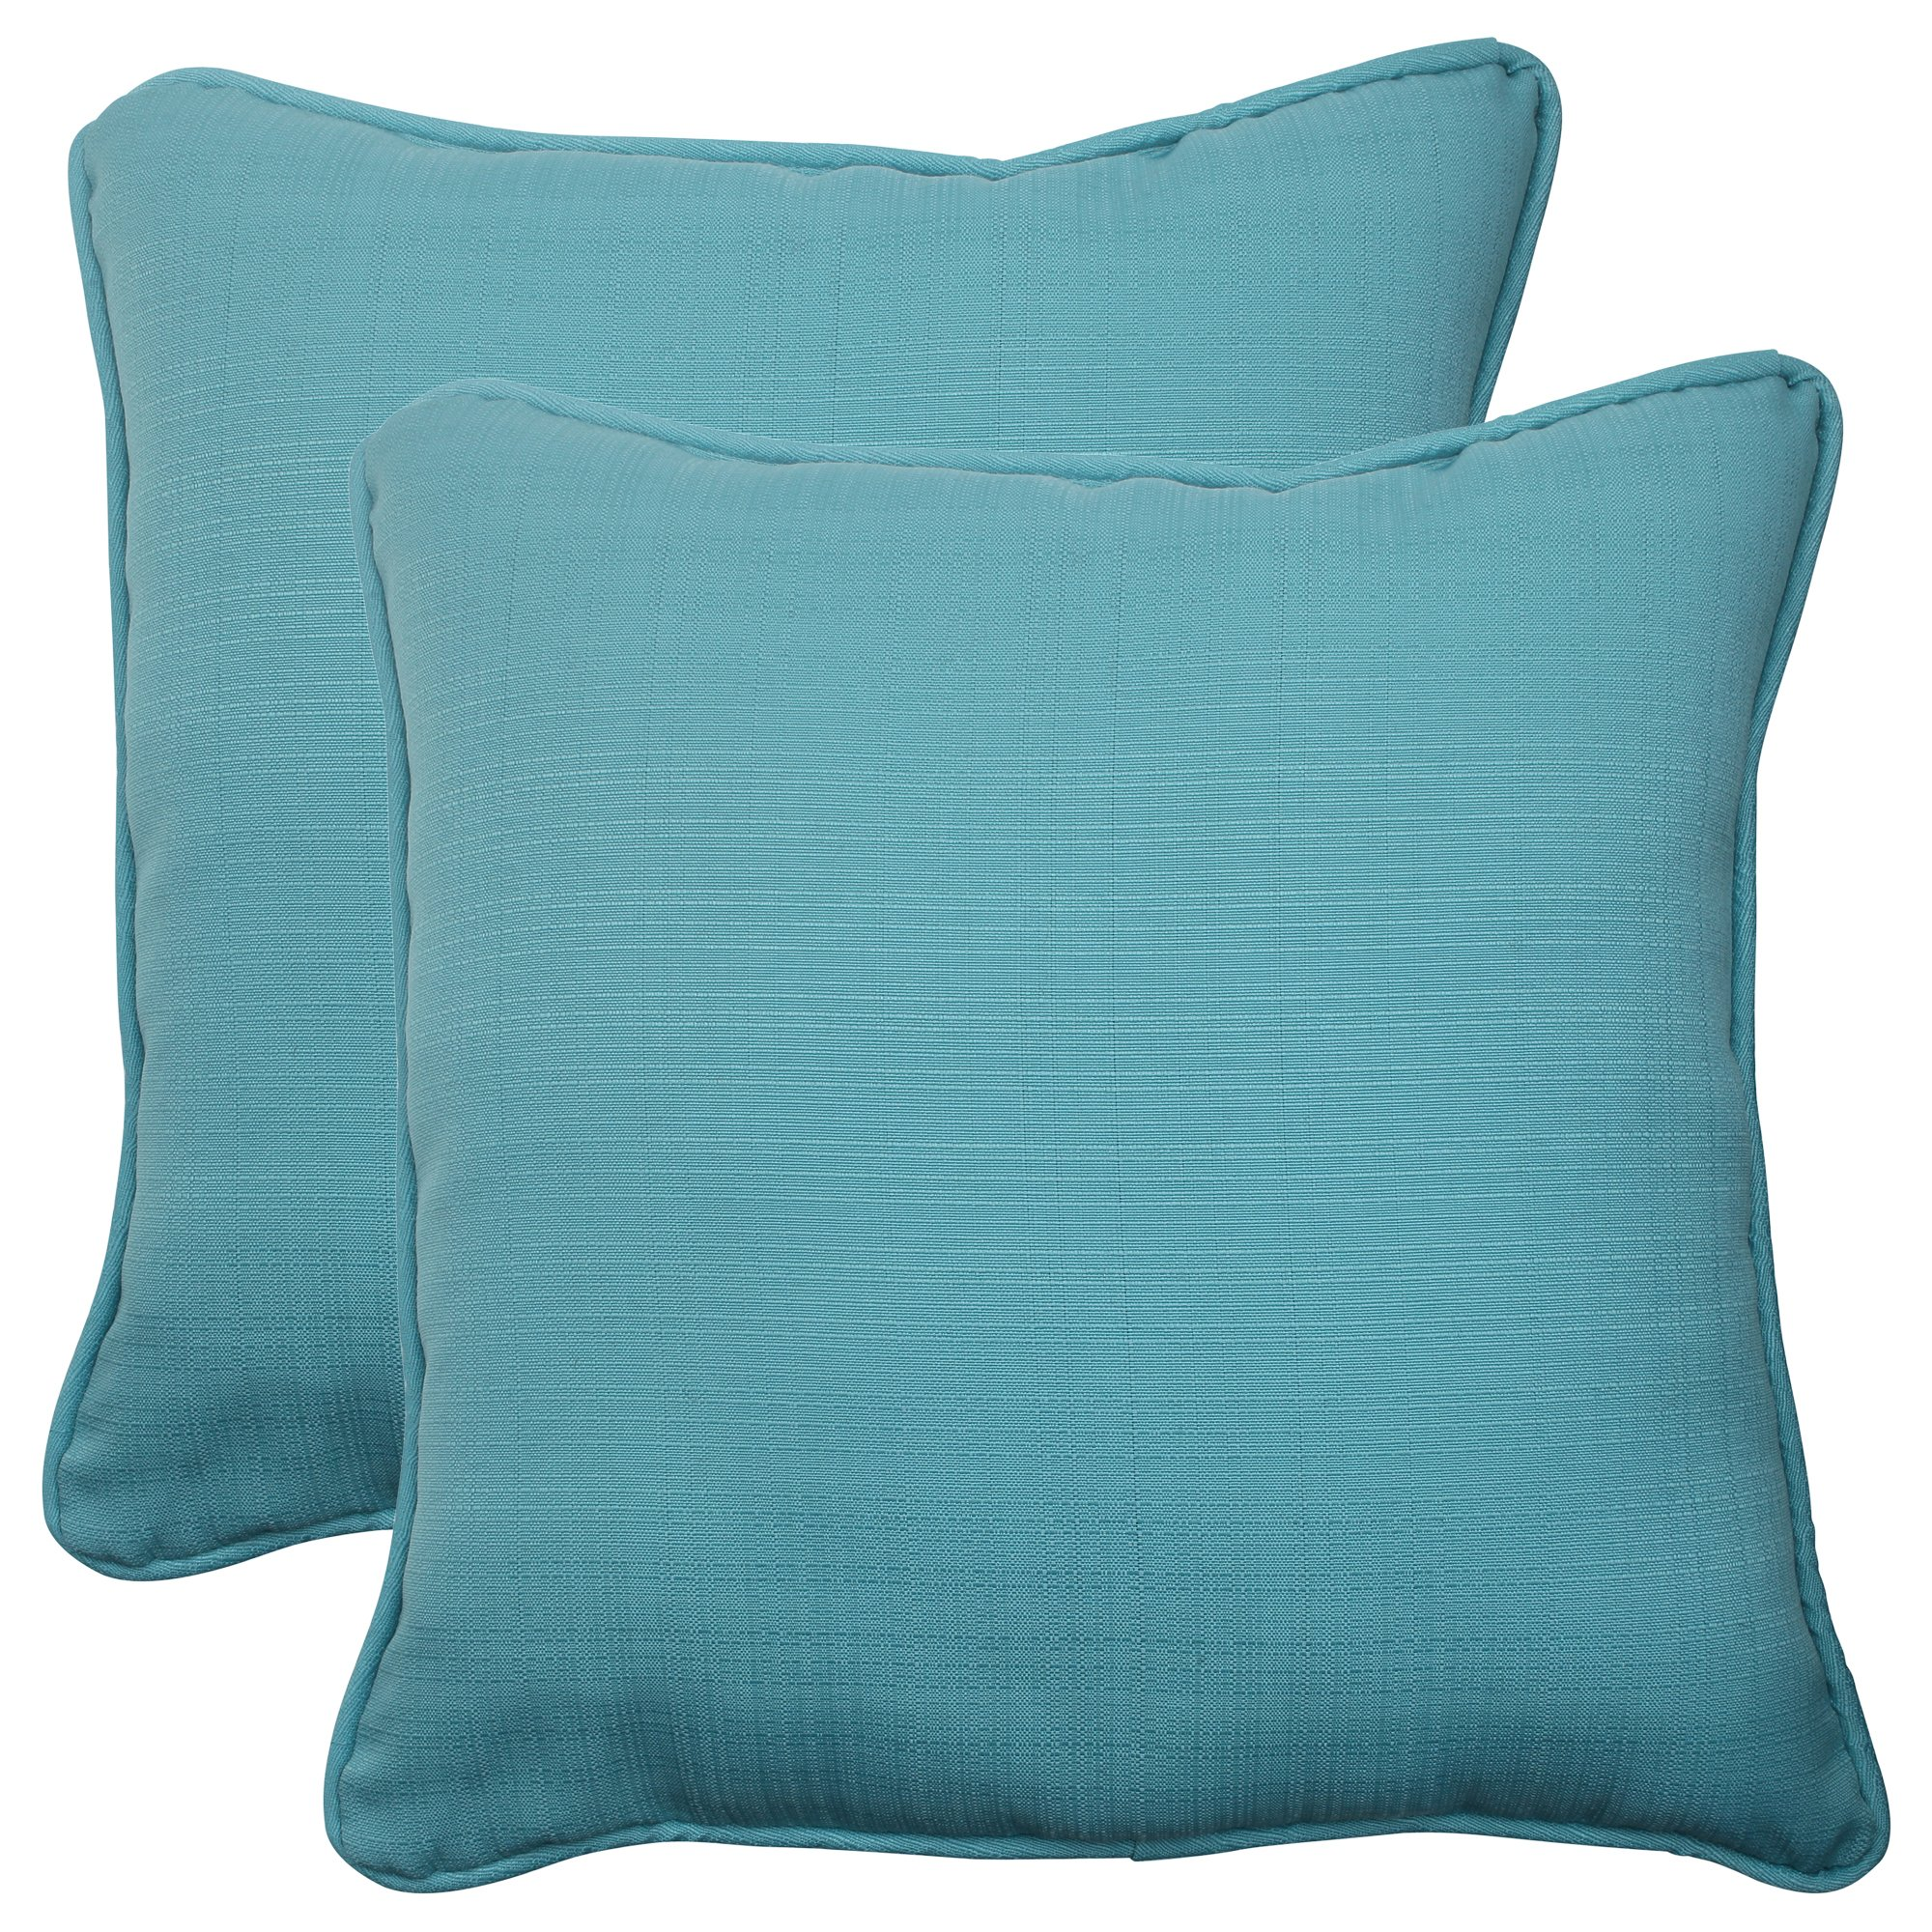 Pillow Perfect Outdoor Forsyth Corded Throw Pillow, 18.5-Inch, Turquoise, Set of 2